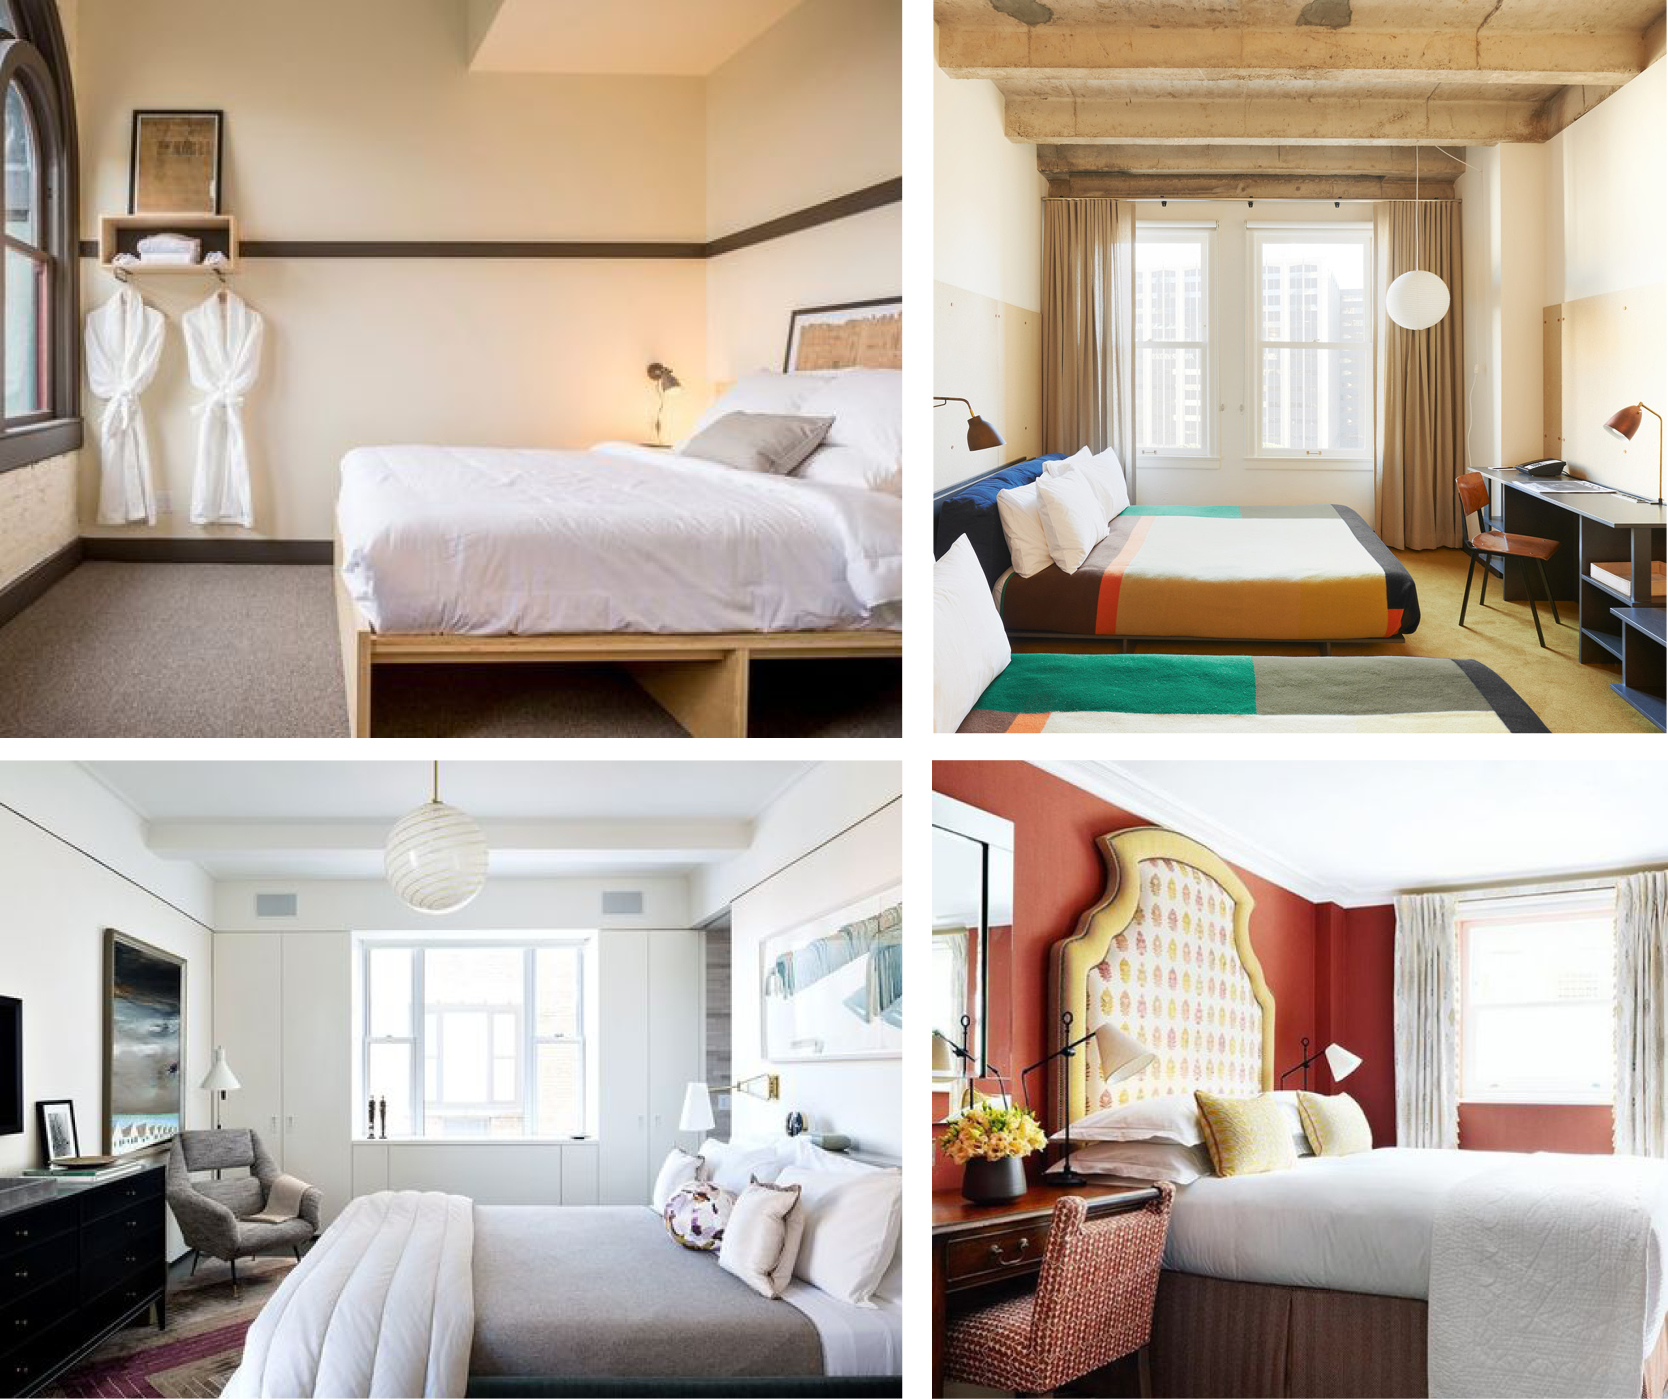 BOUTIQUE HOTEL ROOM INSPIRATION